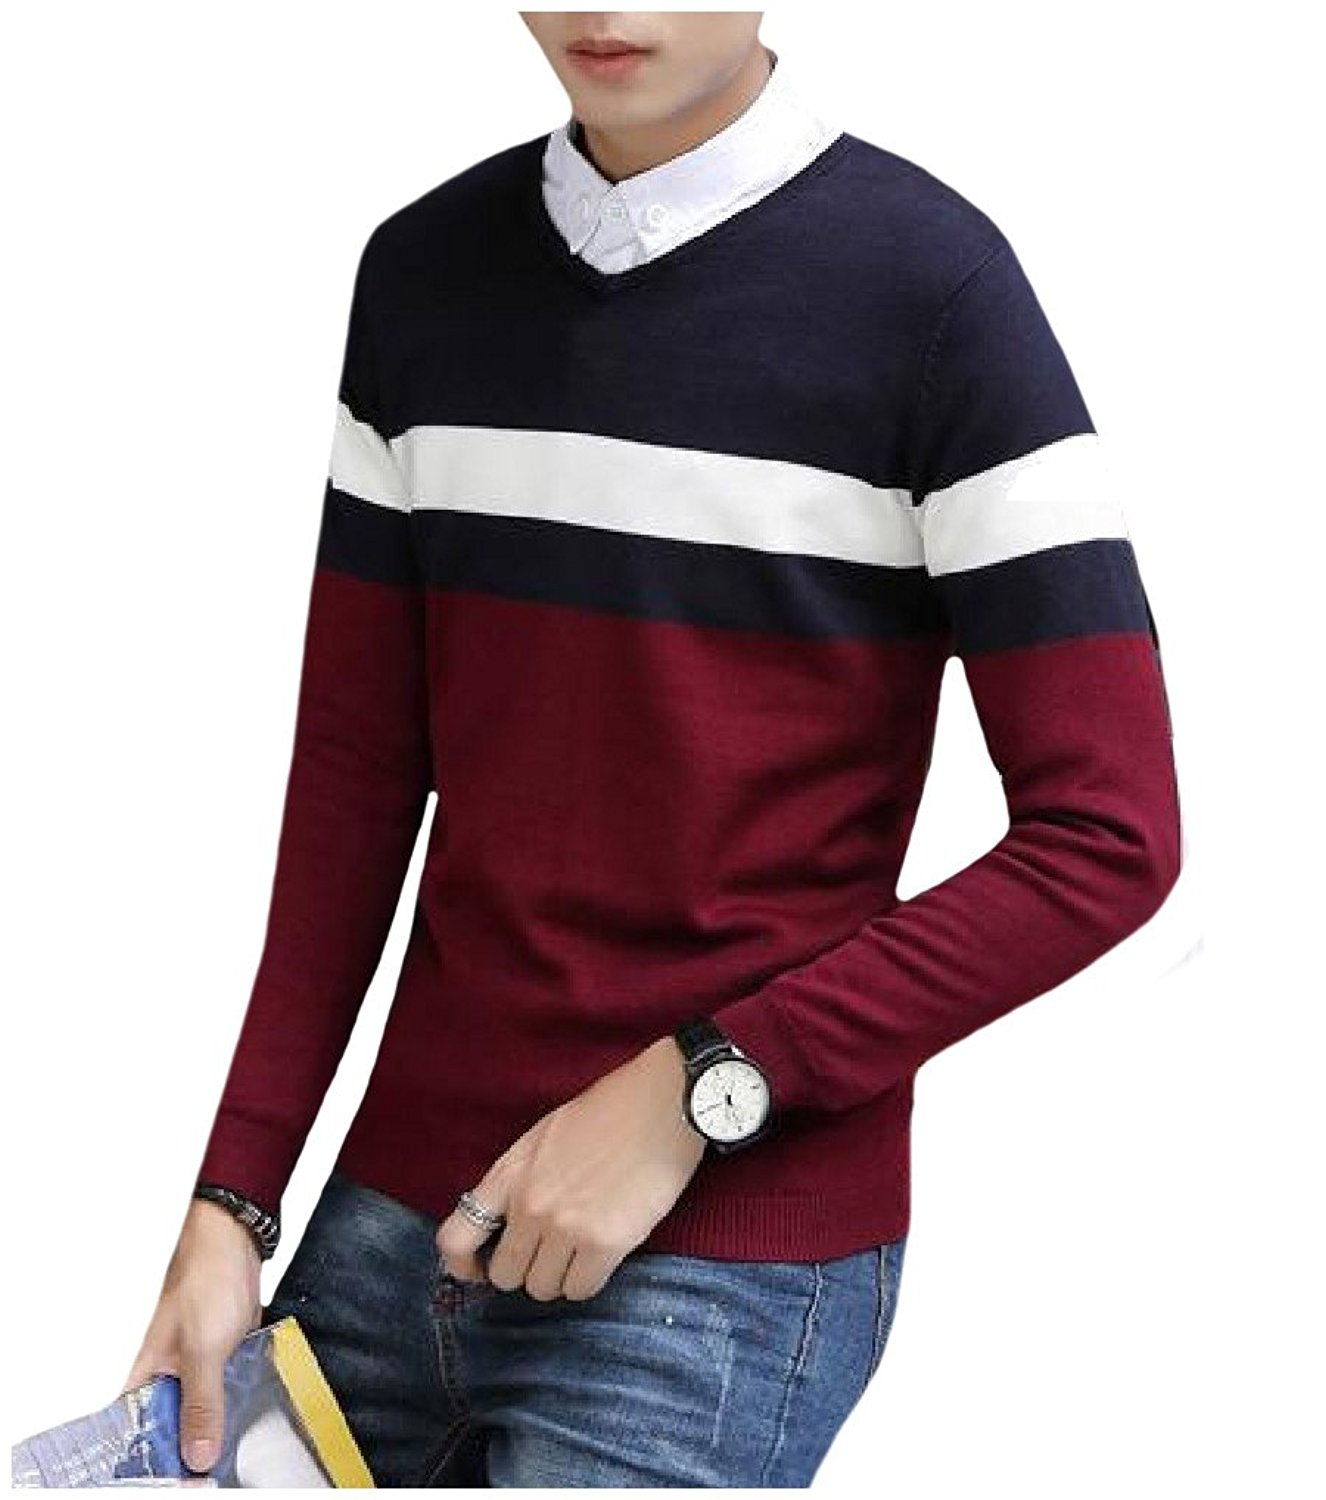 XiaoTianXin-men clothes XTX Men Cozy Fashionable Striped Contrast Color Sweaters Pullover